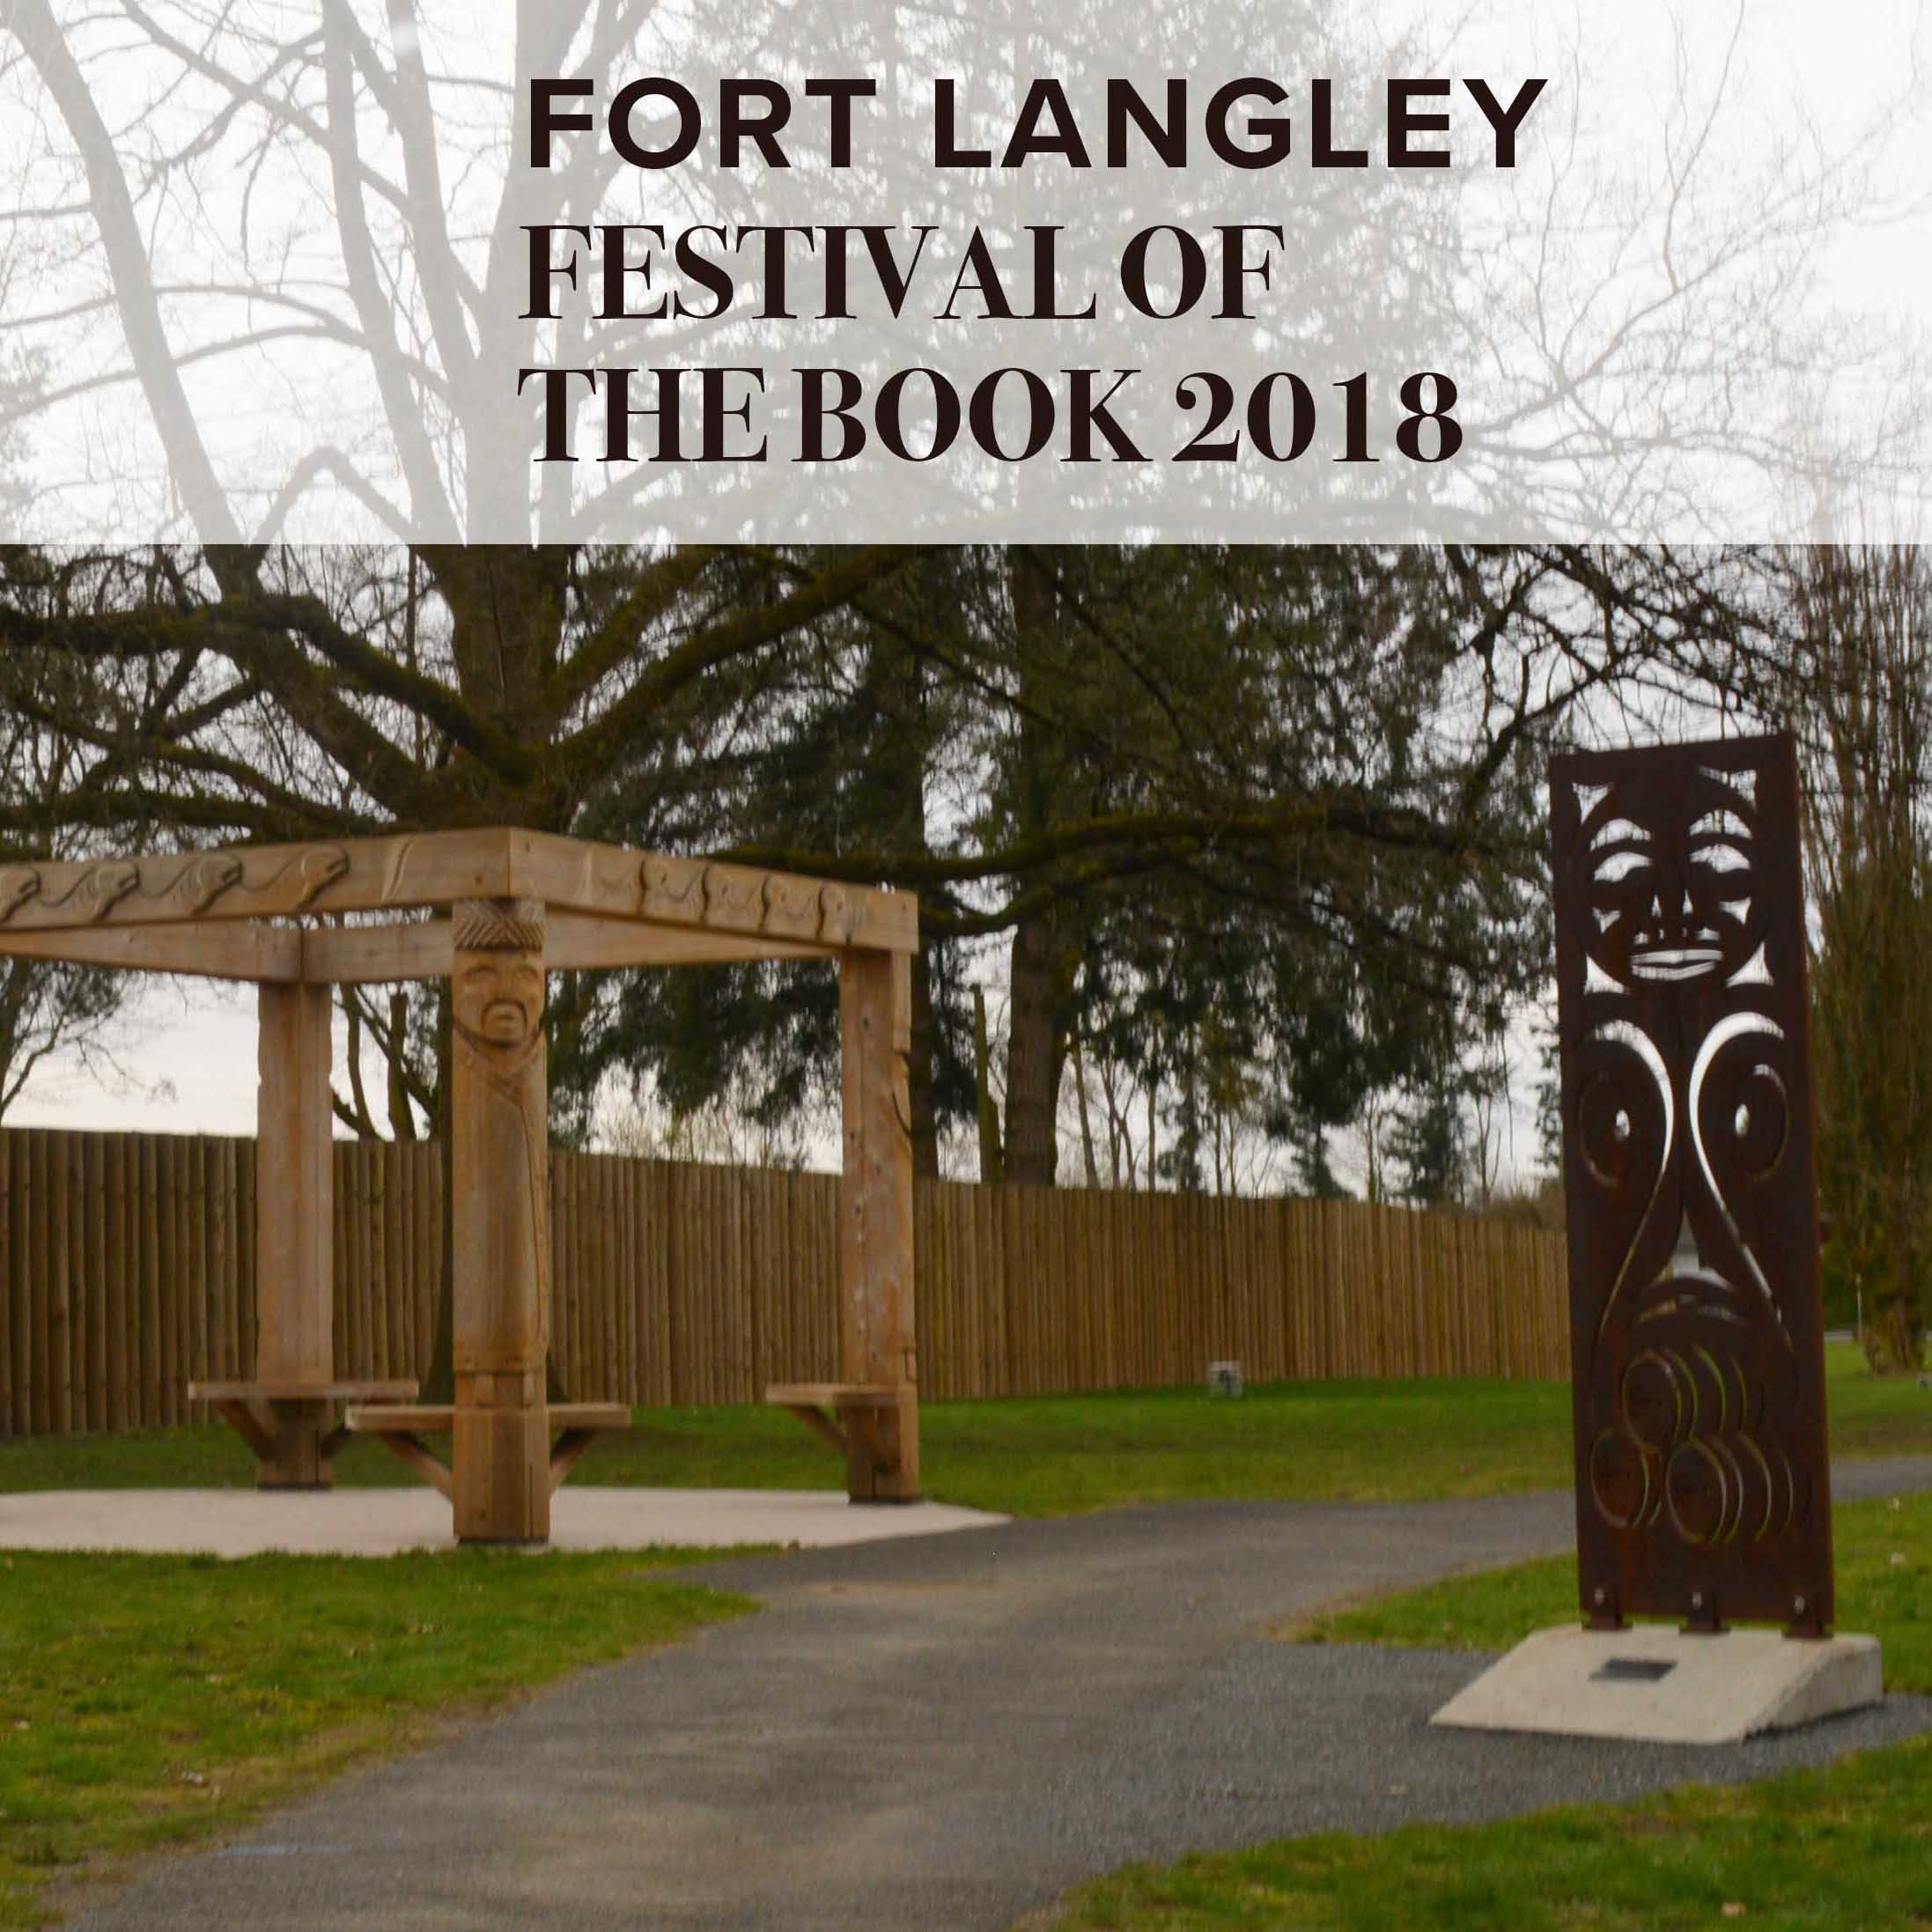 Fort LangleyFestival of the Book